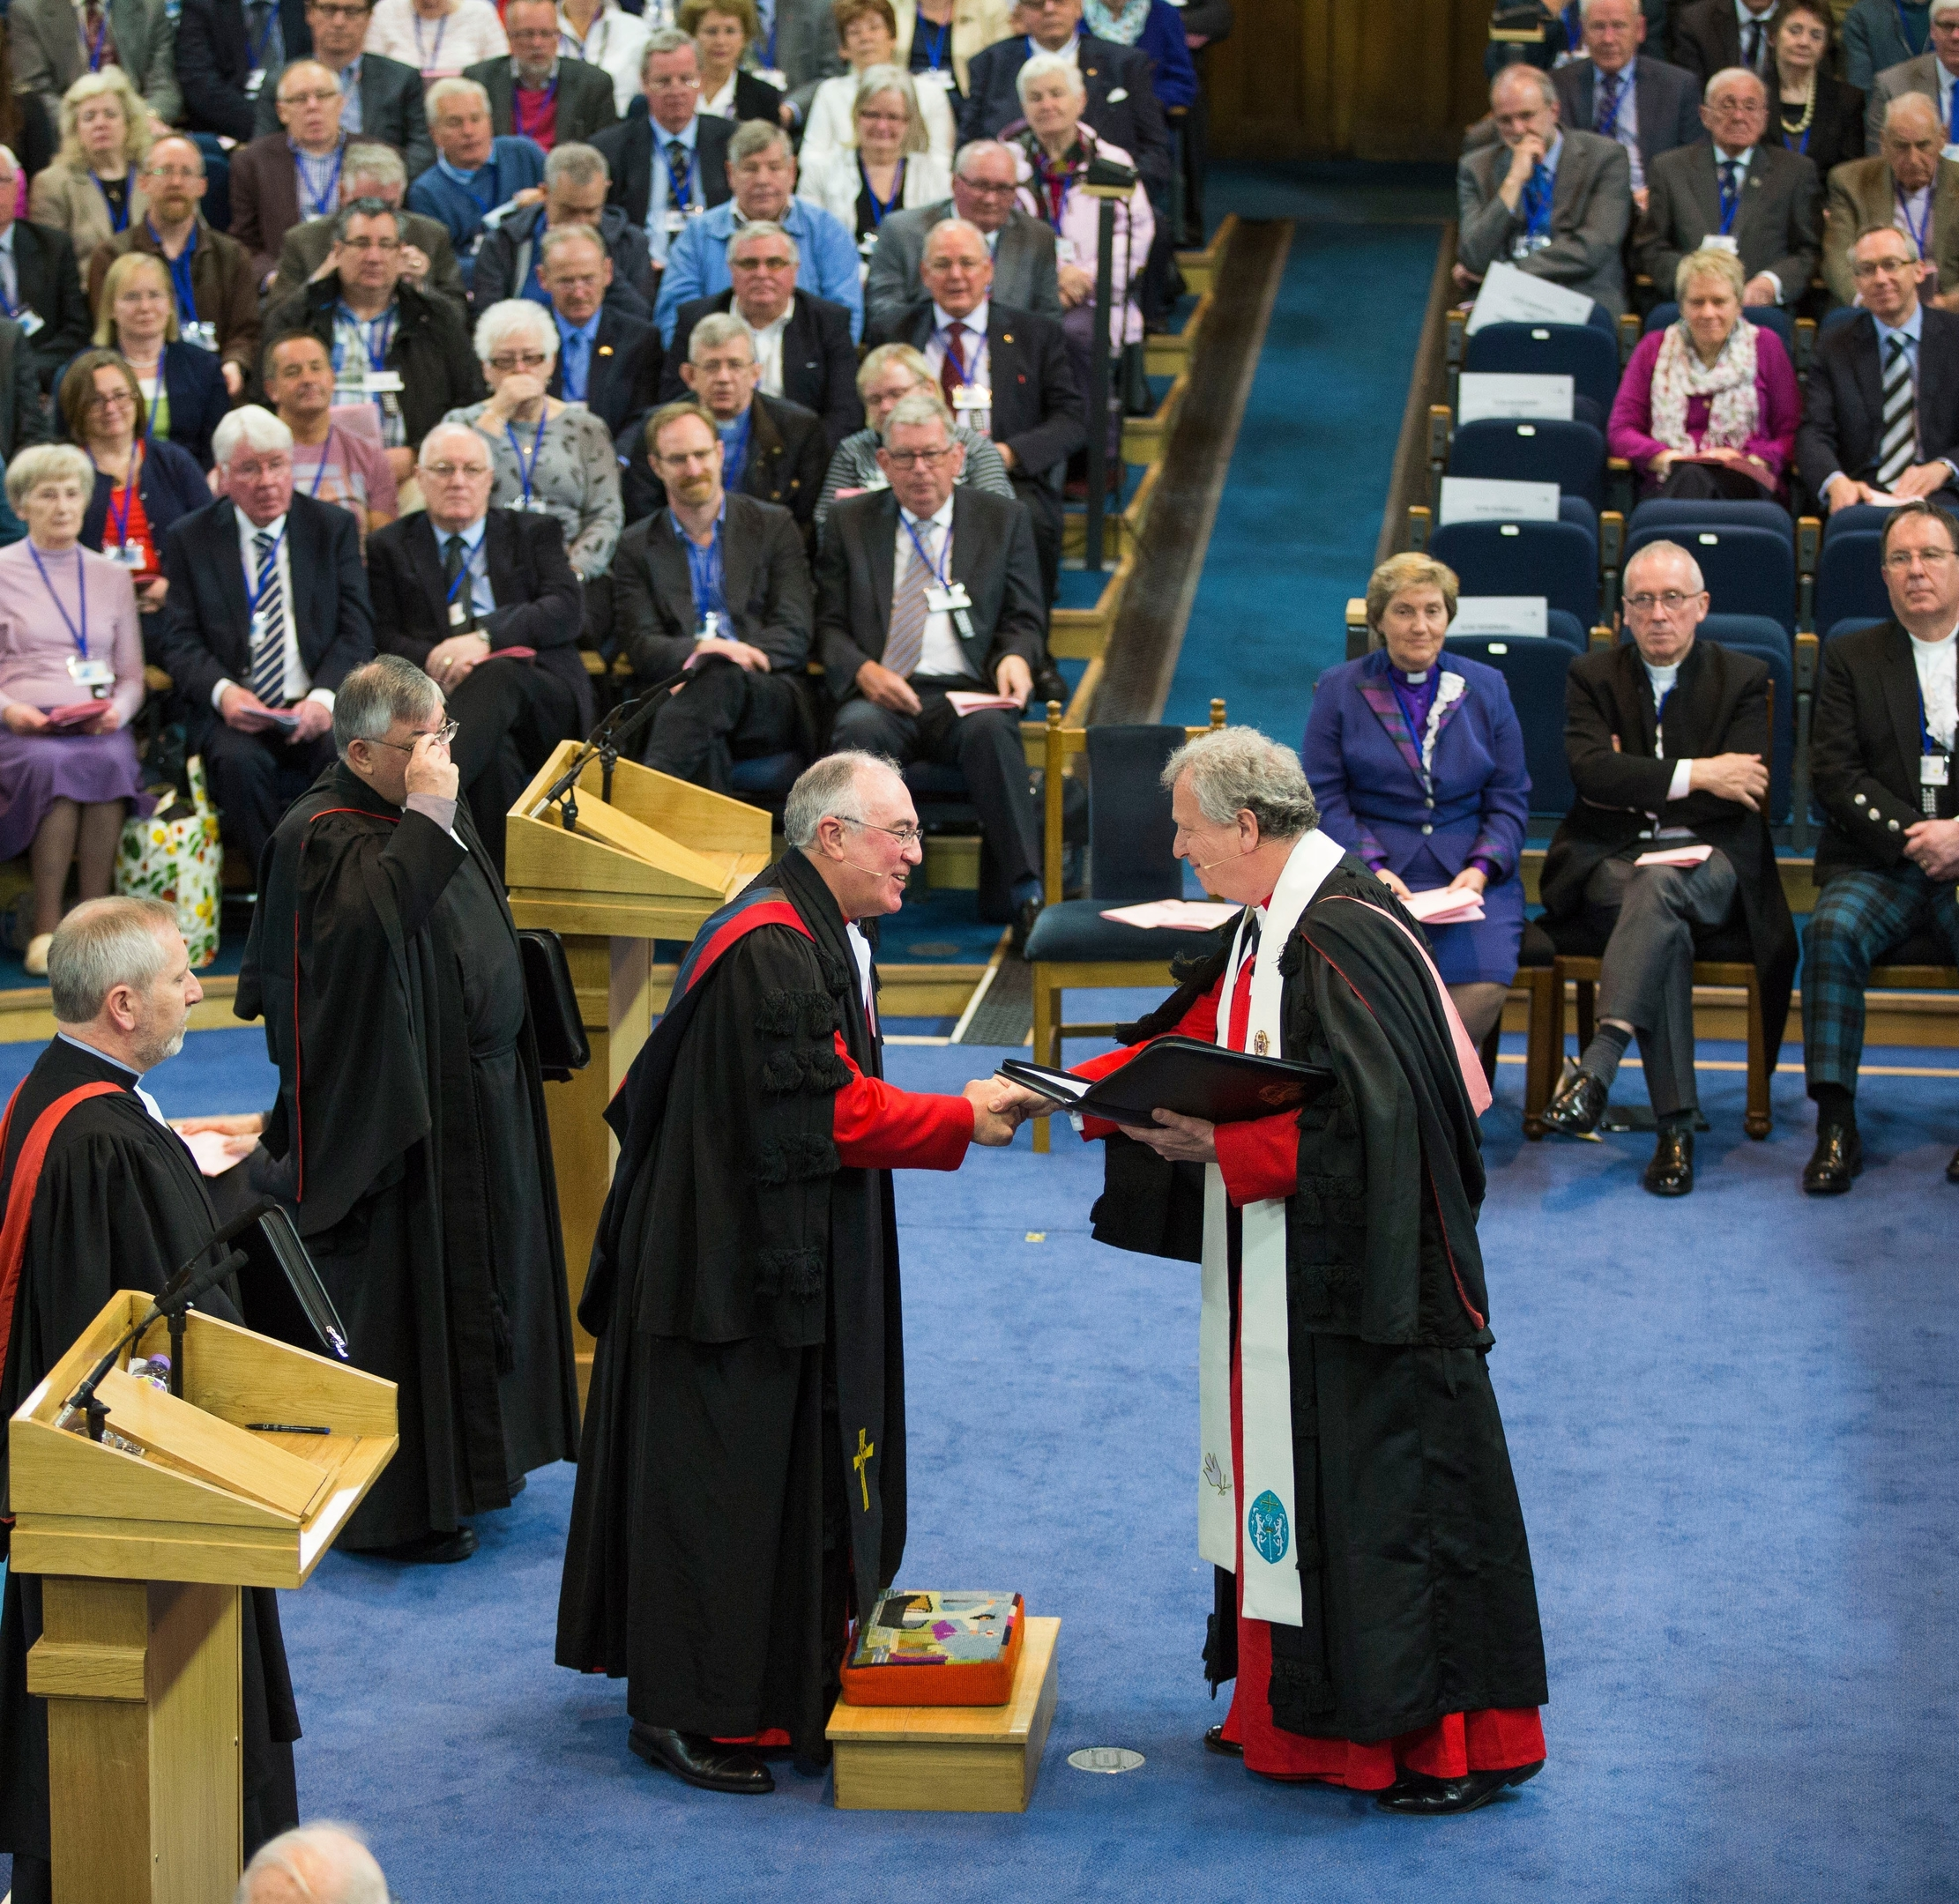 The Church of Scotland General Assembly 2015